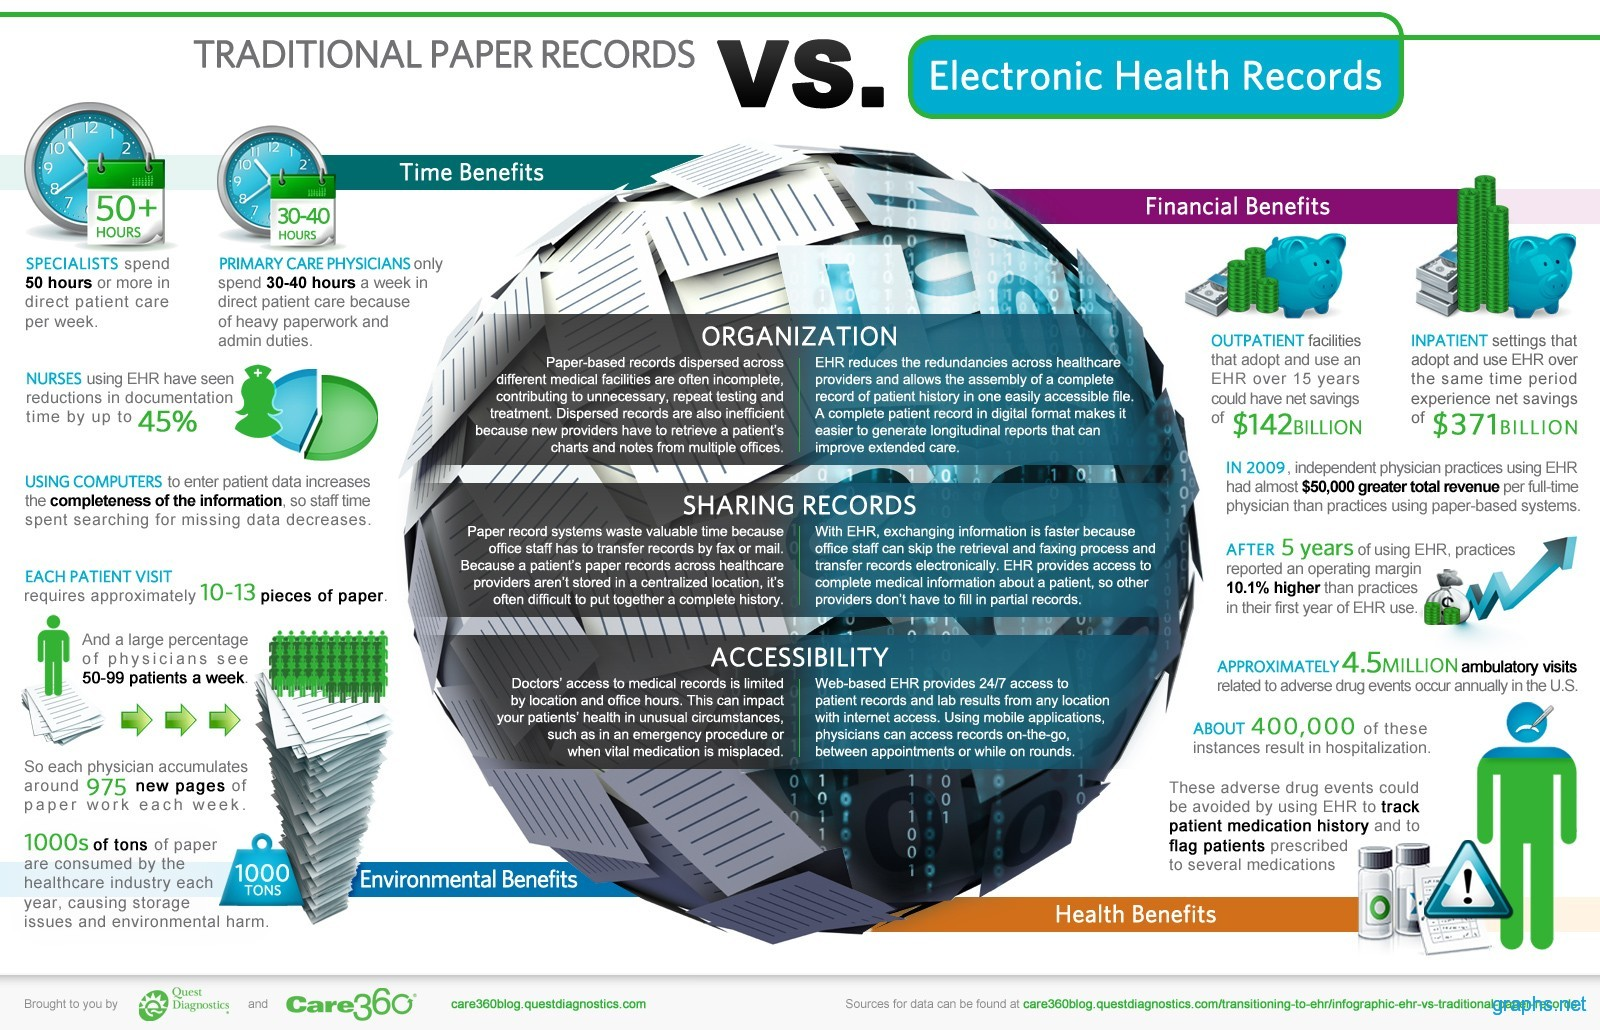 Paper Based Health Records vs. Electronic Health Records